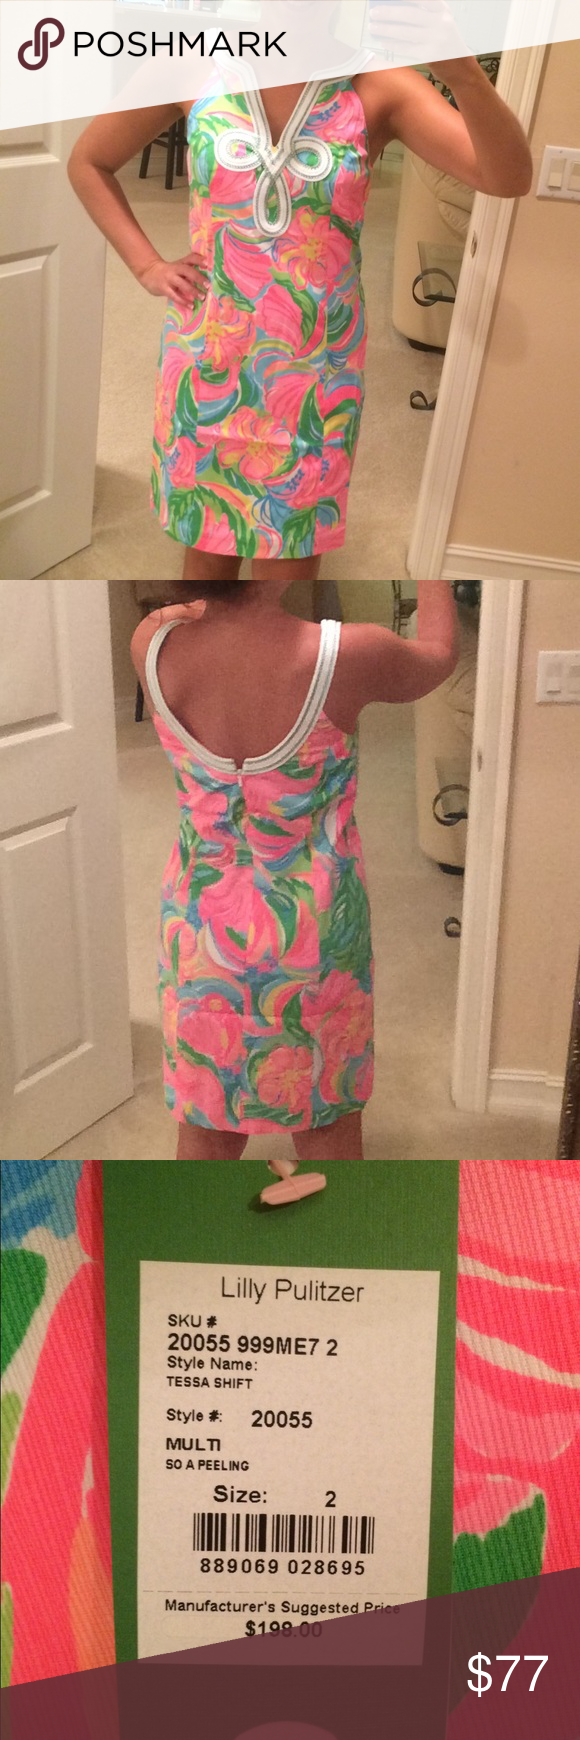 Lily Pulitzer dress size 2 Brand new; just too big for me. Tags still attached Lilly Pulitzer Dresses Midi